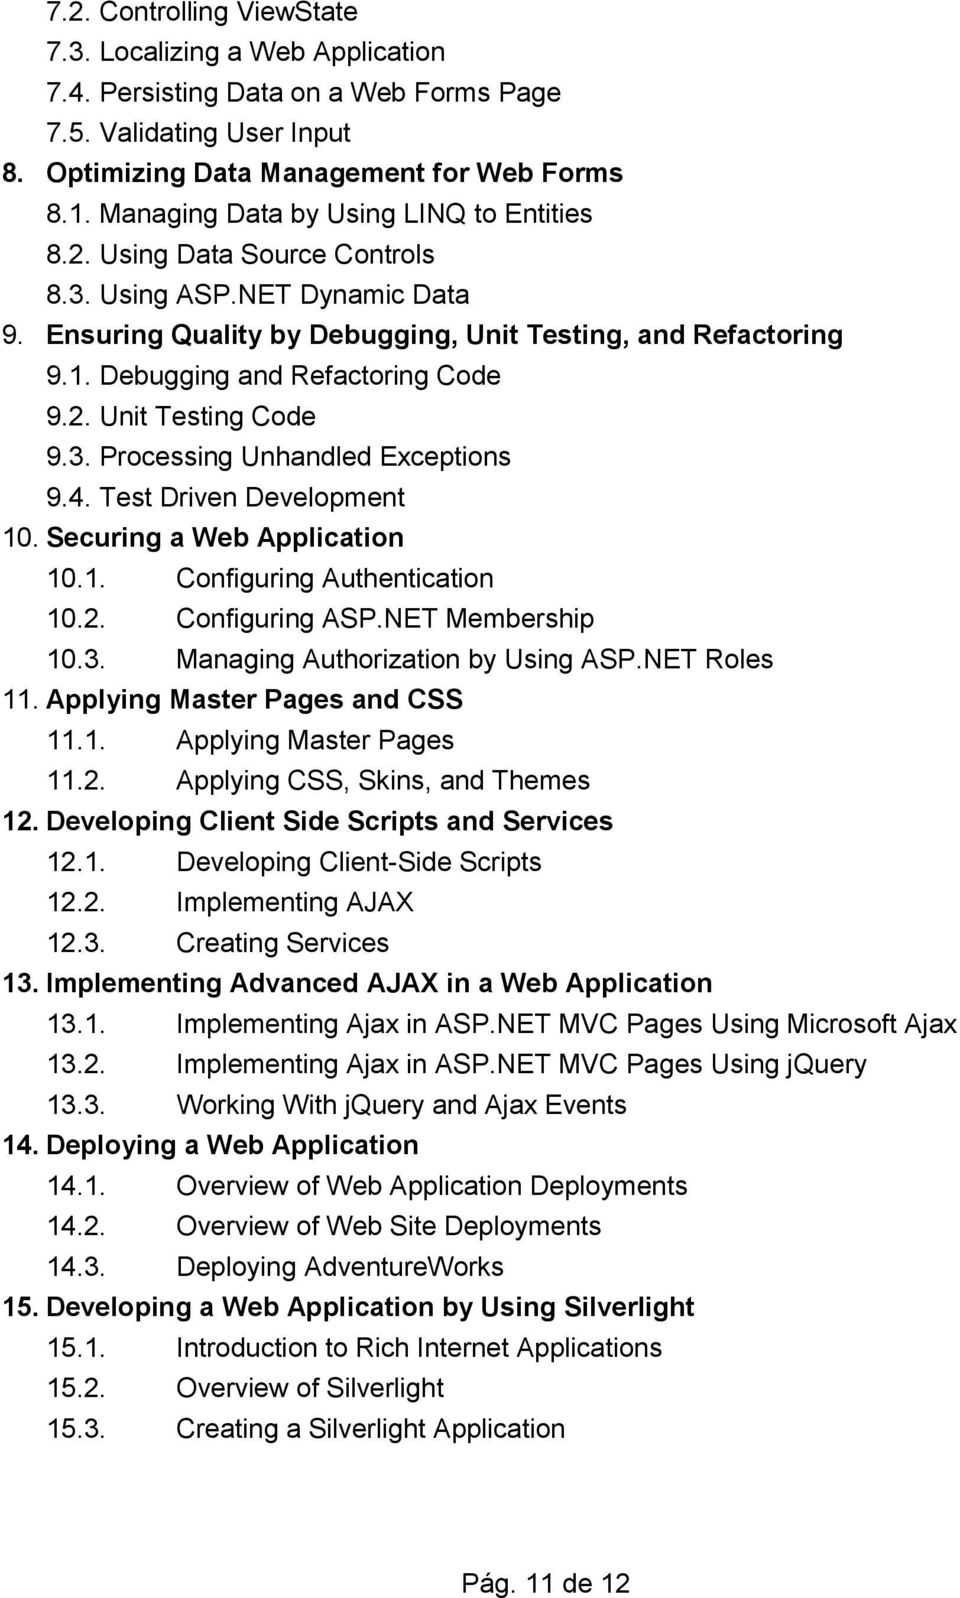 Debugging and Refactoring Code 9.2. Unit Testing Code 9.3. Processing Unhandled Exceptions 9.4. Test Driven Development 10. Securing a Web Application 10.1. Configuring Authentication 10.2. Configuring ASP.